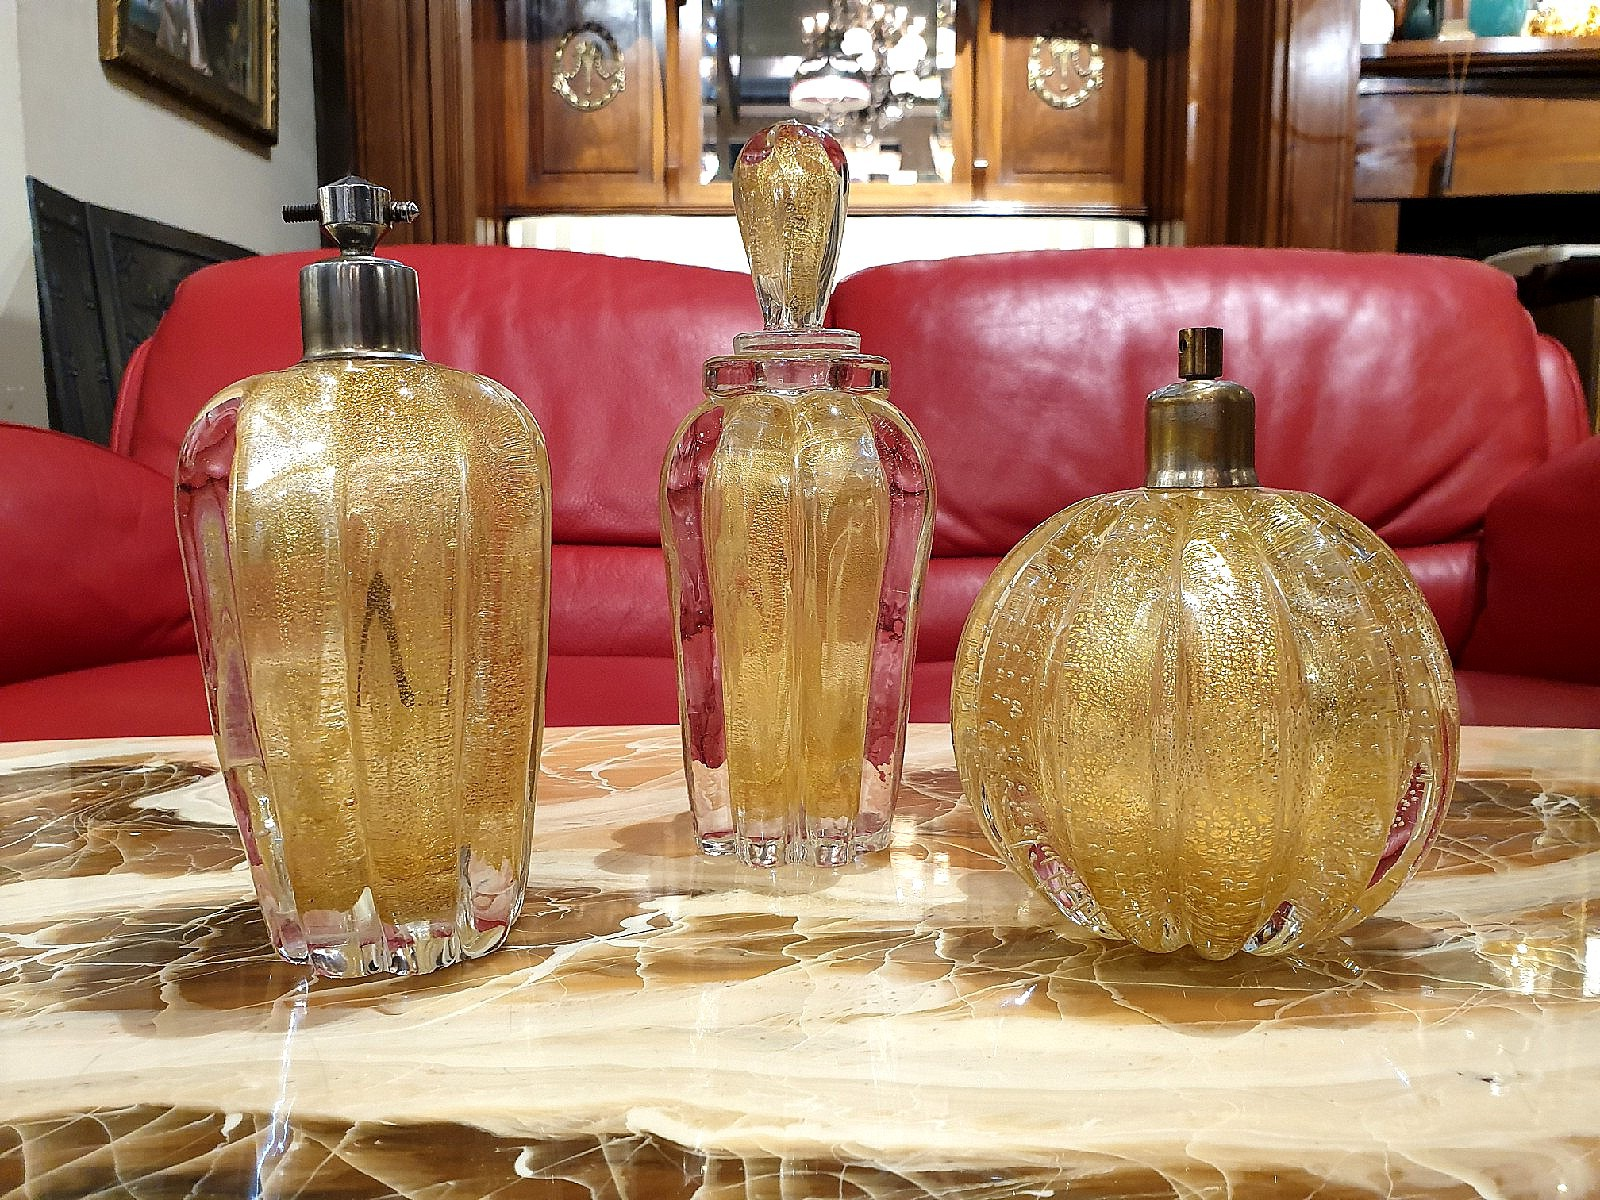 Set of three perfume dispensers